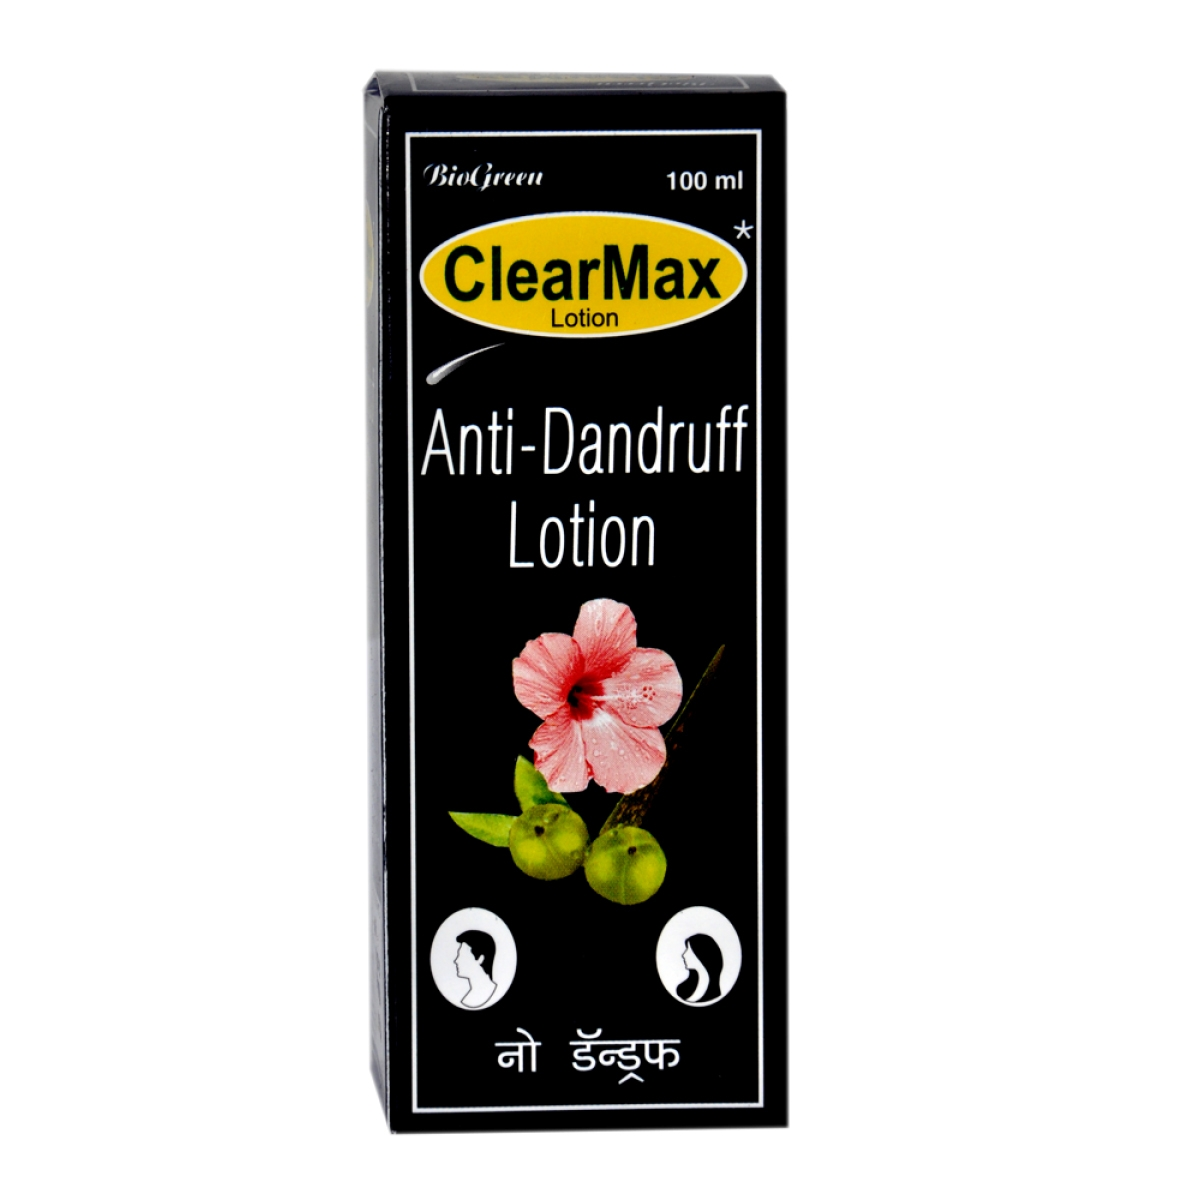 Clear Max Lotion In Mizoram